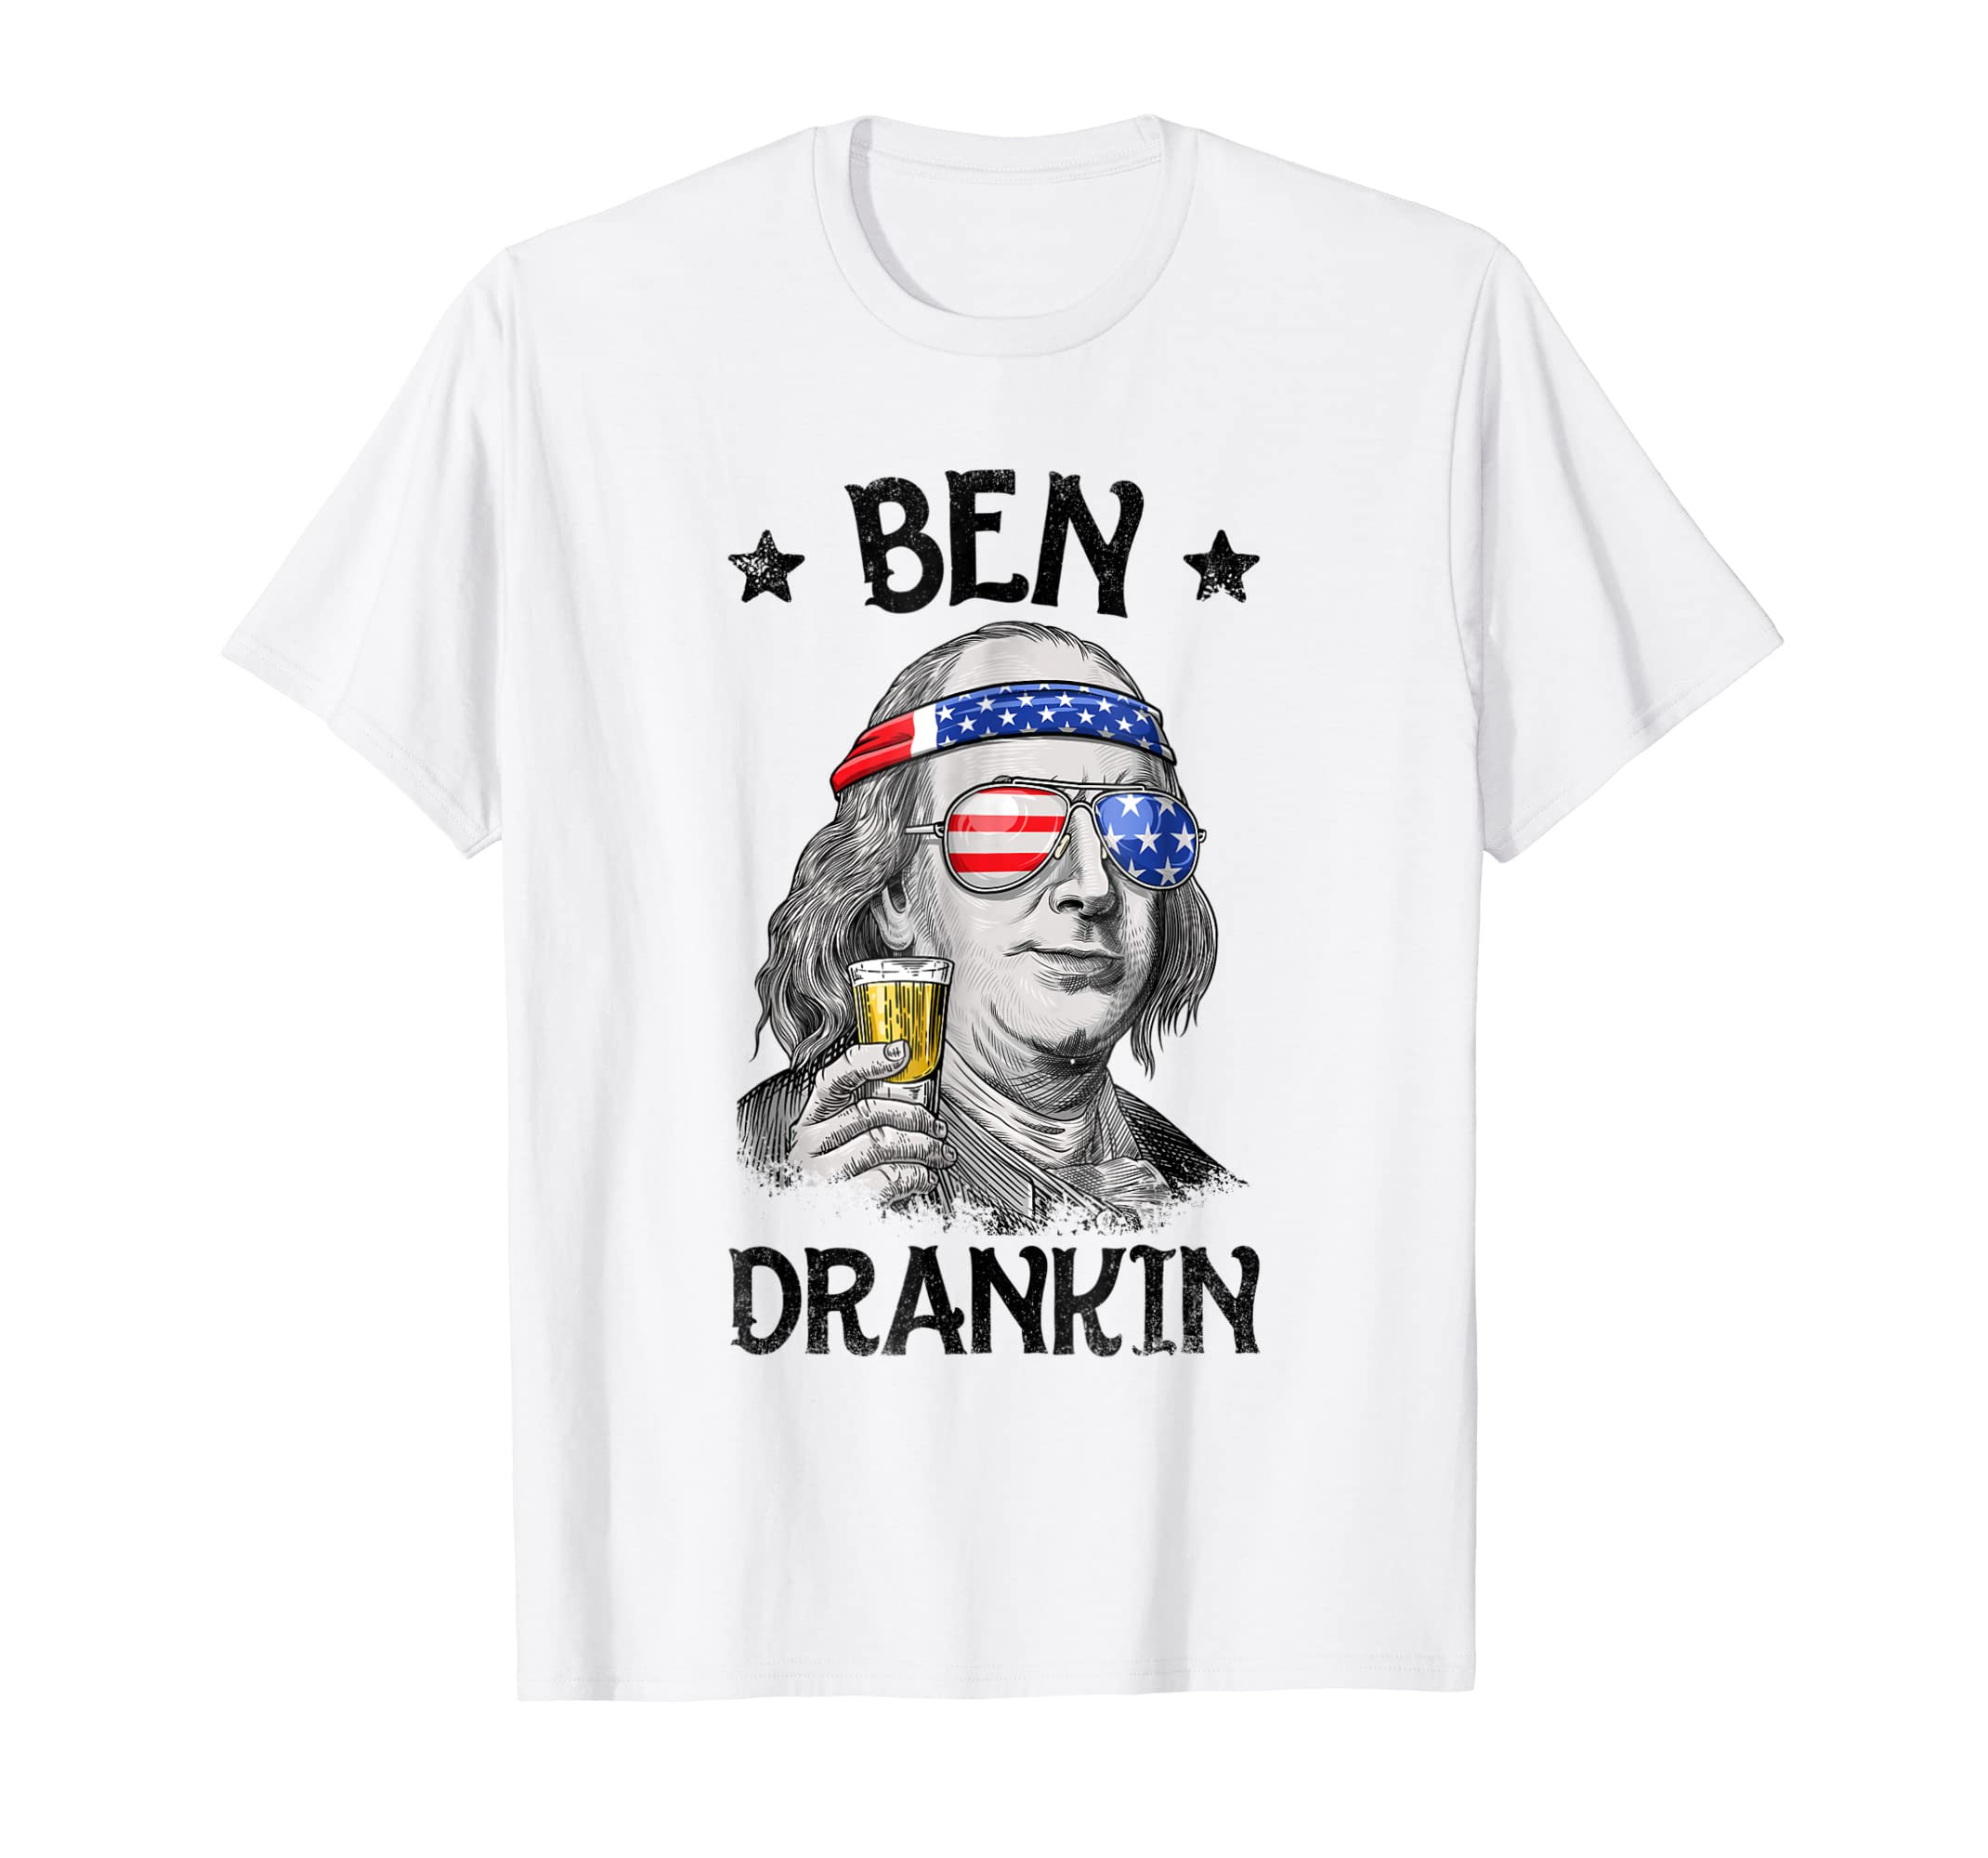 daa721c131582 Amazon.com  Ben Drankin 4th of July T Shirt Benjamin Franklin Men Gifts   Clothing